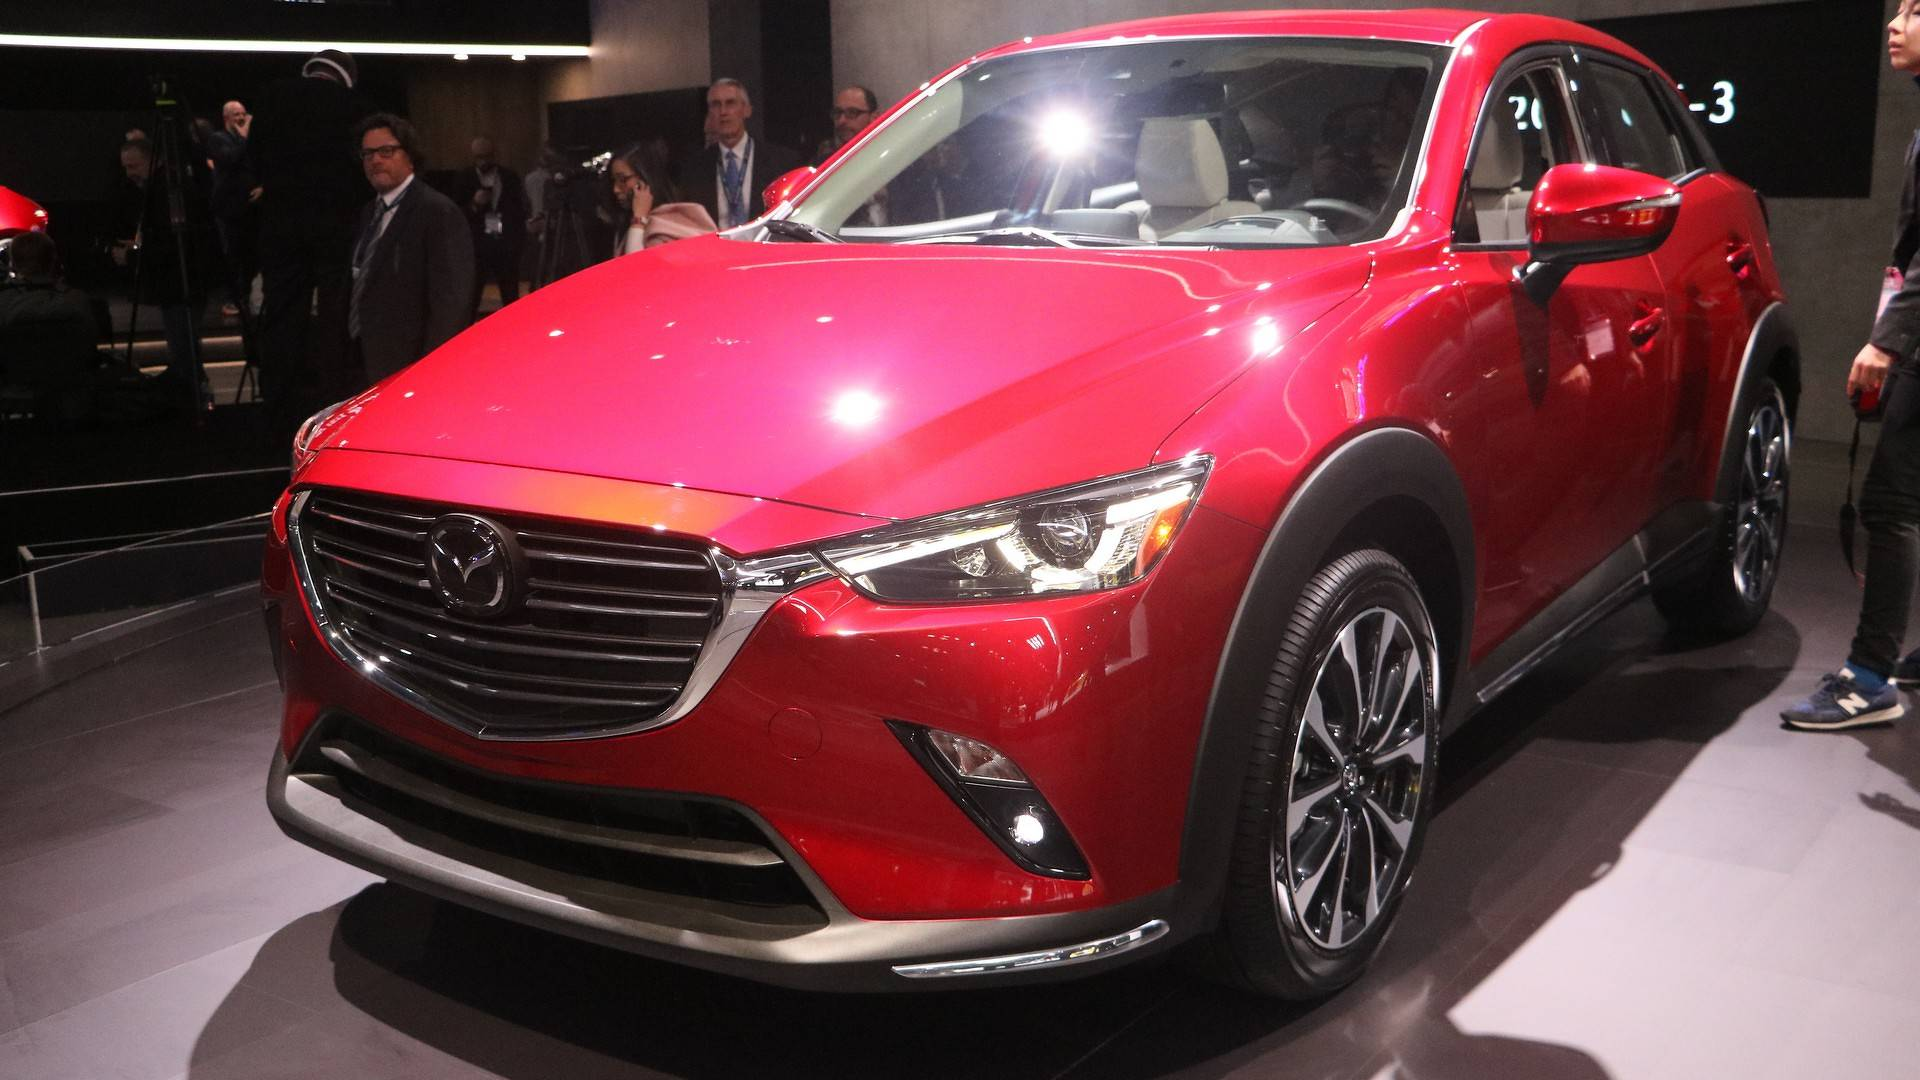 cx its updated inside flagship successful edition special announced updates launched compact has gt suv in the sport technology a and june for new mazda